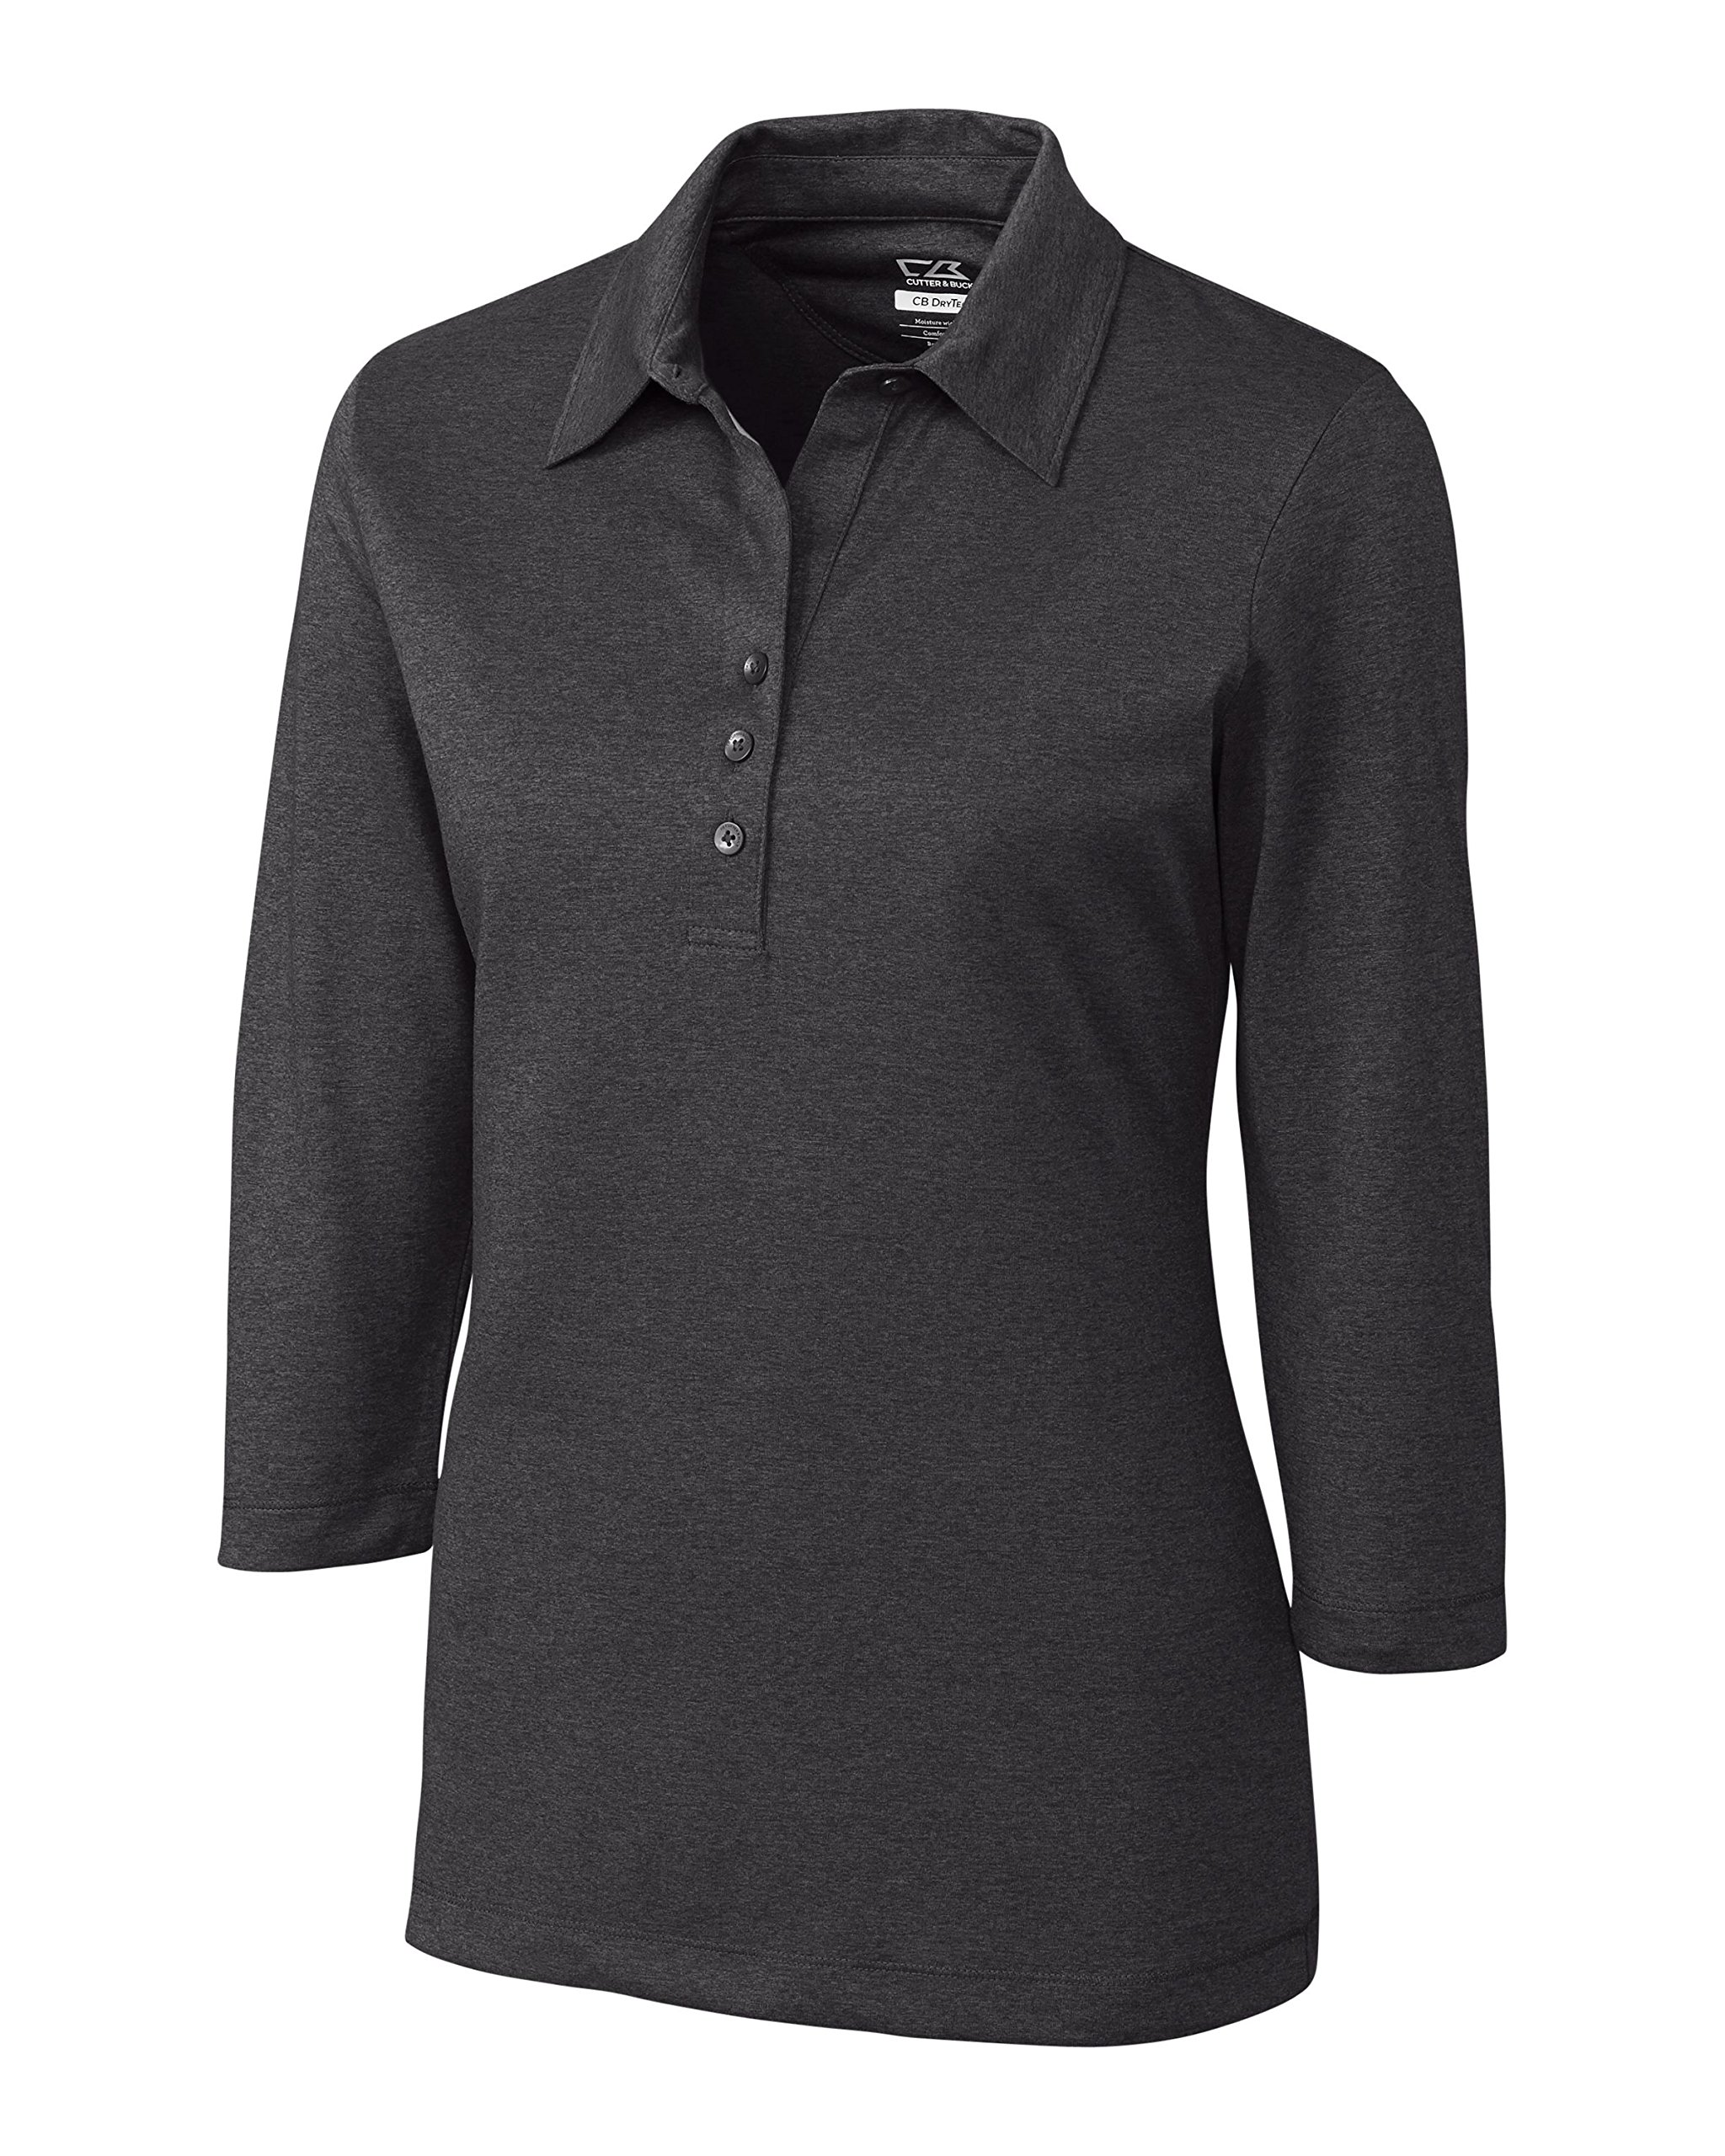 Cutter & Buck Women's CB Drytec 3/4 Sleeve Chelan Polo, Charcoal Heather X-Small